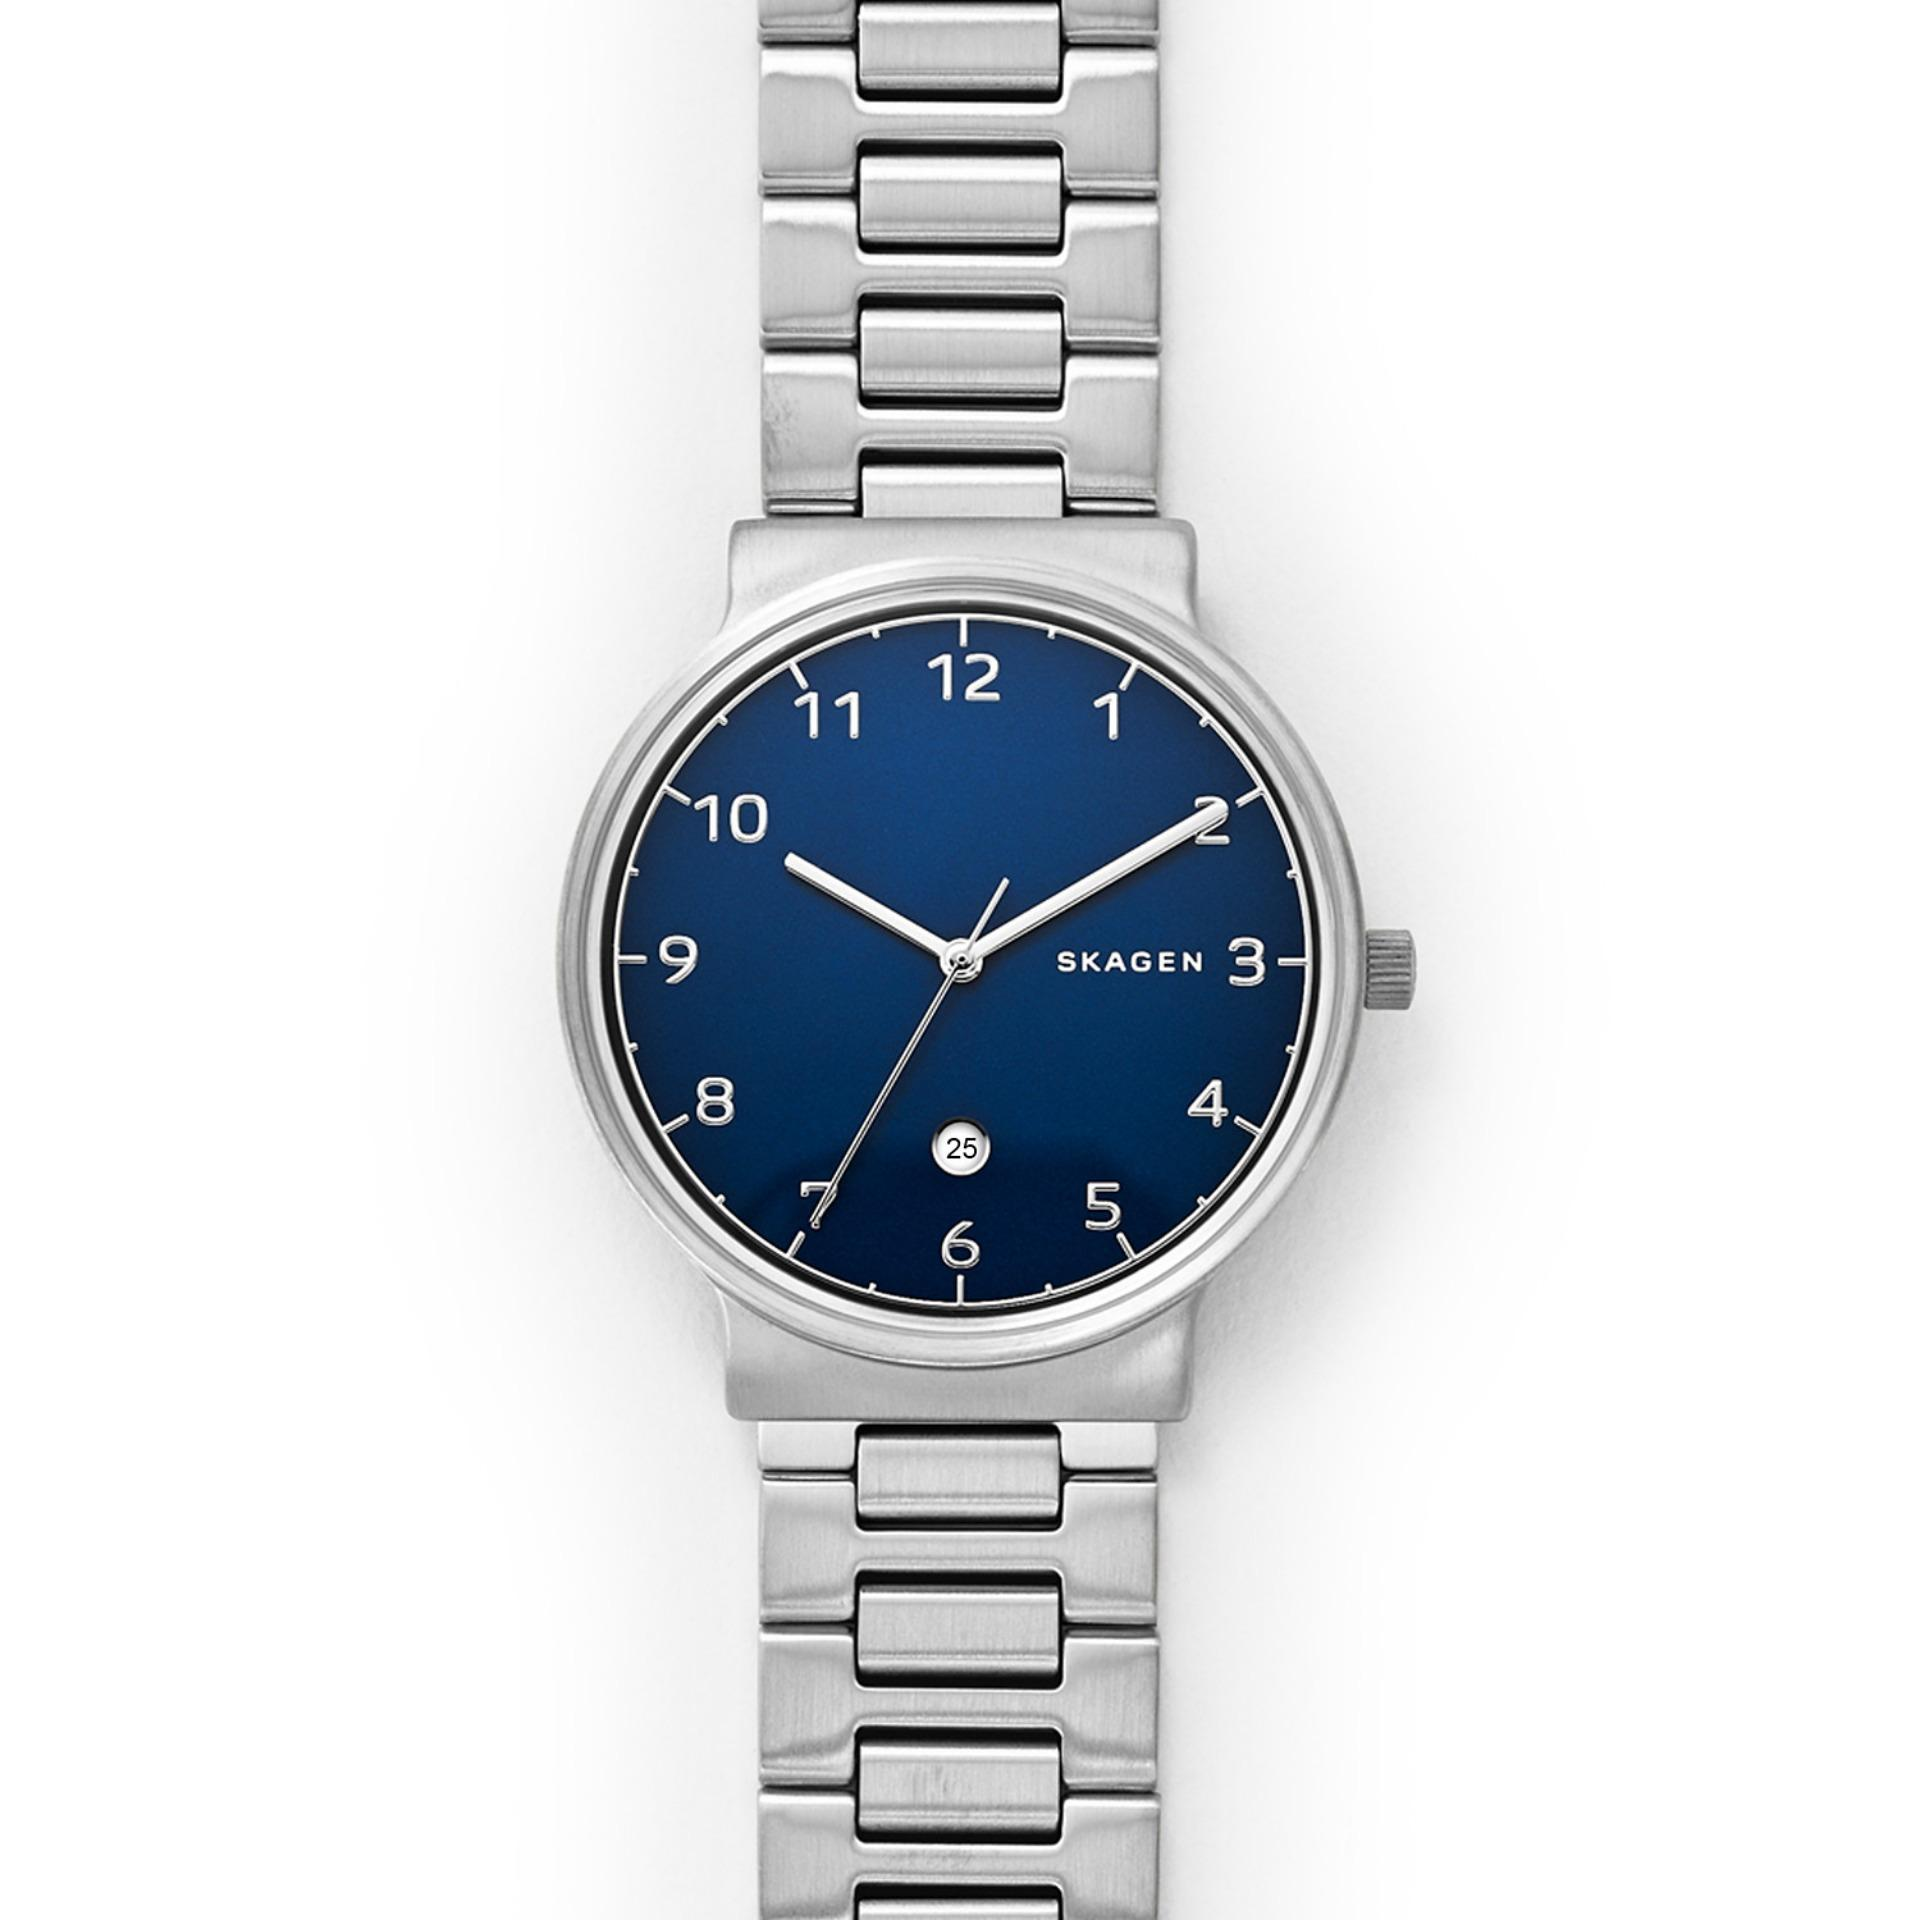 Skagen Ancher - Blue Round Dial 40mm - Stainless Steel - Silver - Jam Tangan Pria - SKW6295 - SL